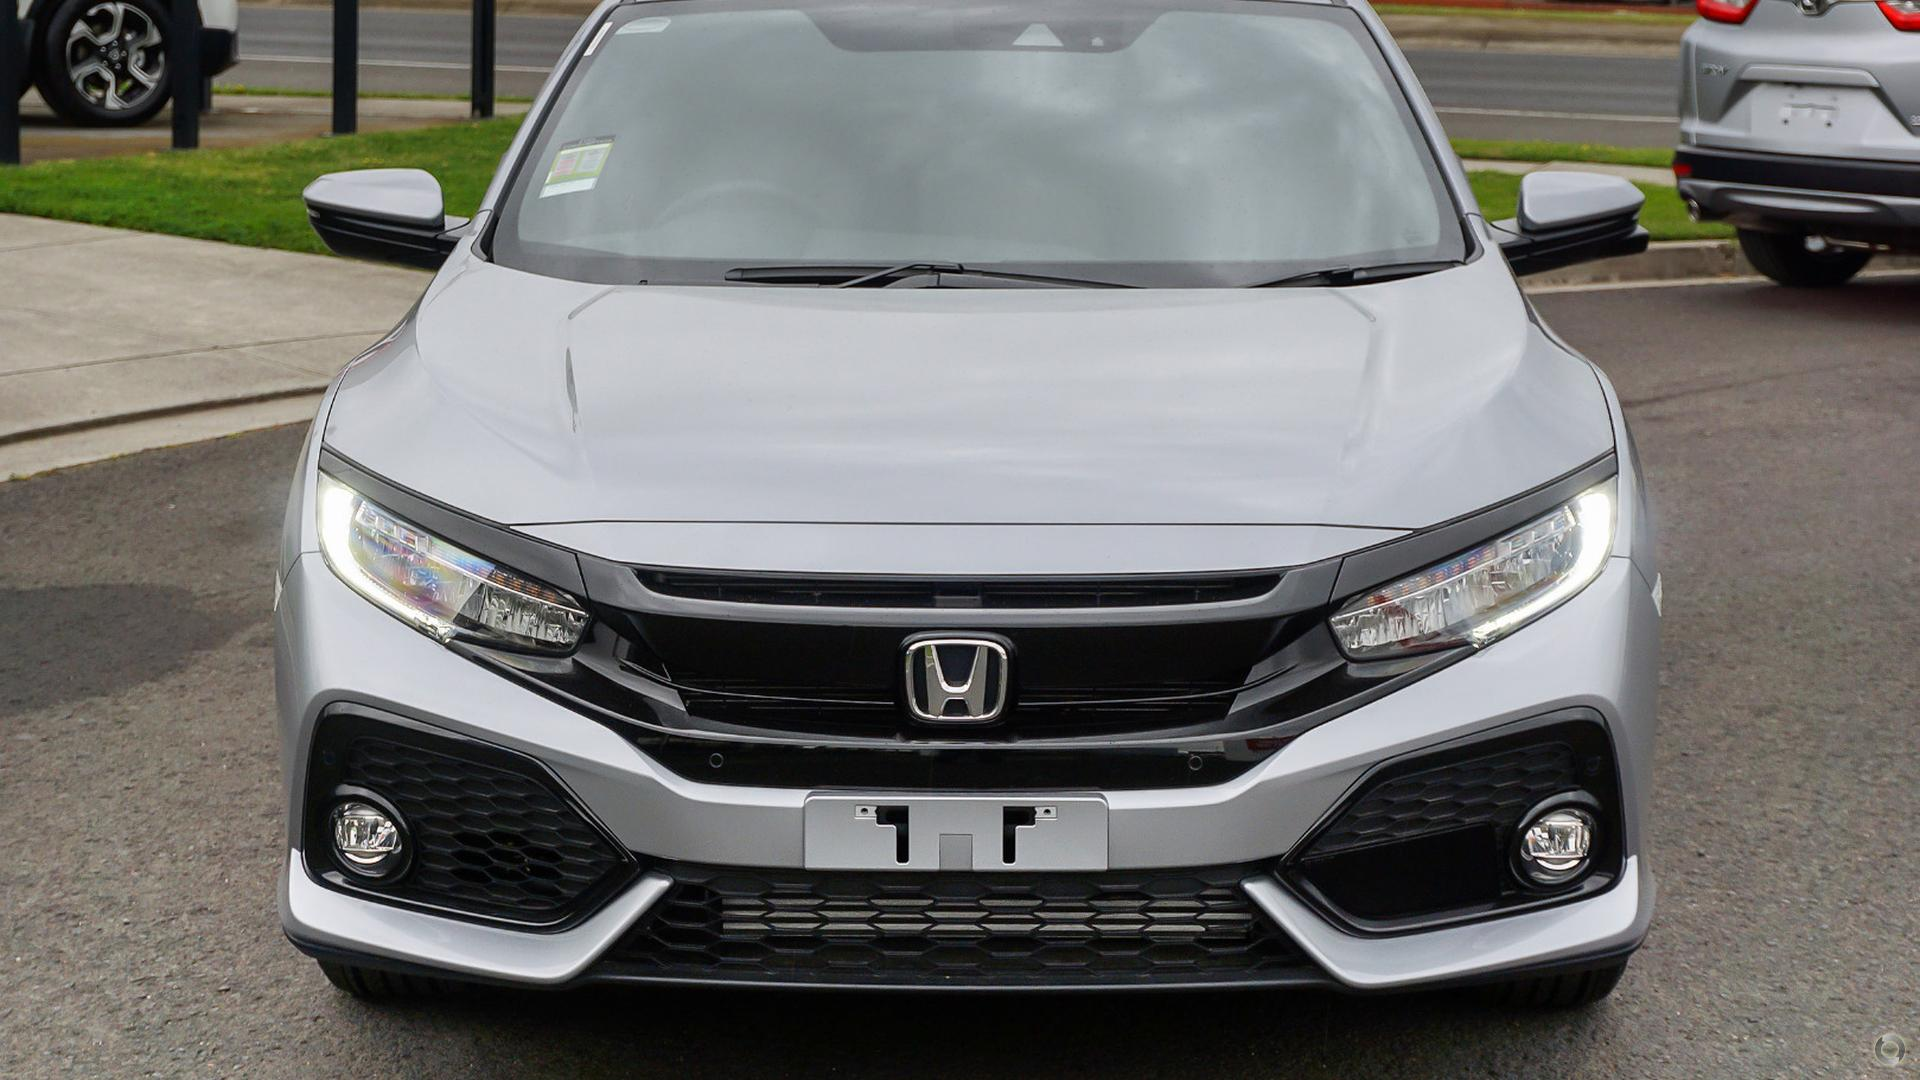 2018 Honda Civic VTi-LX 10th Gen